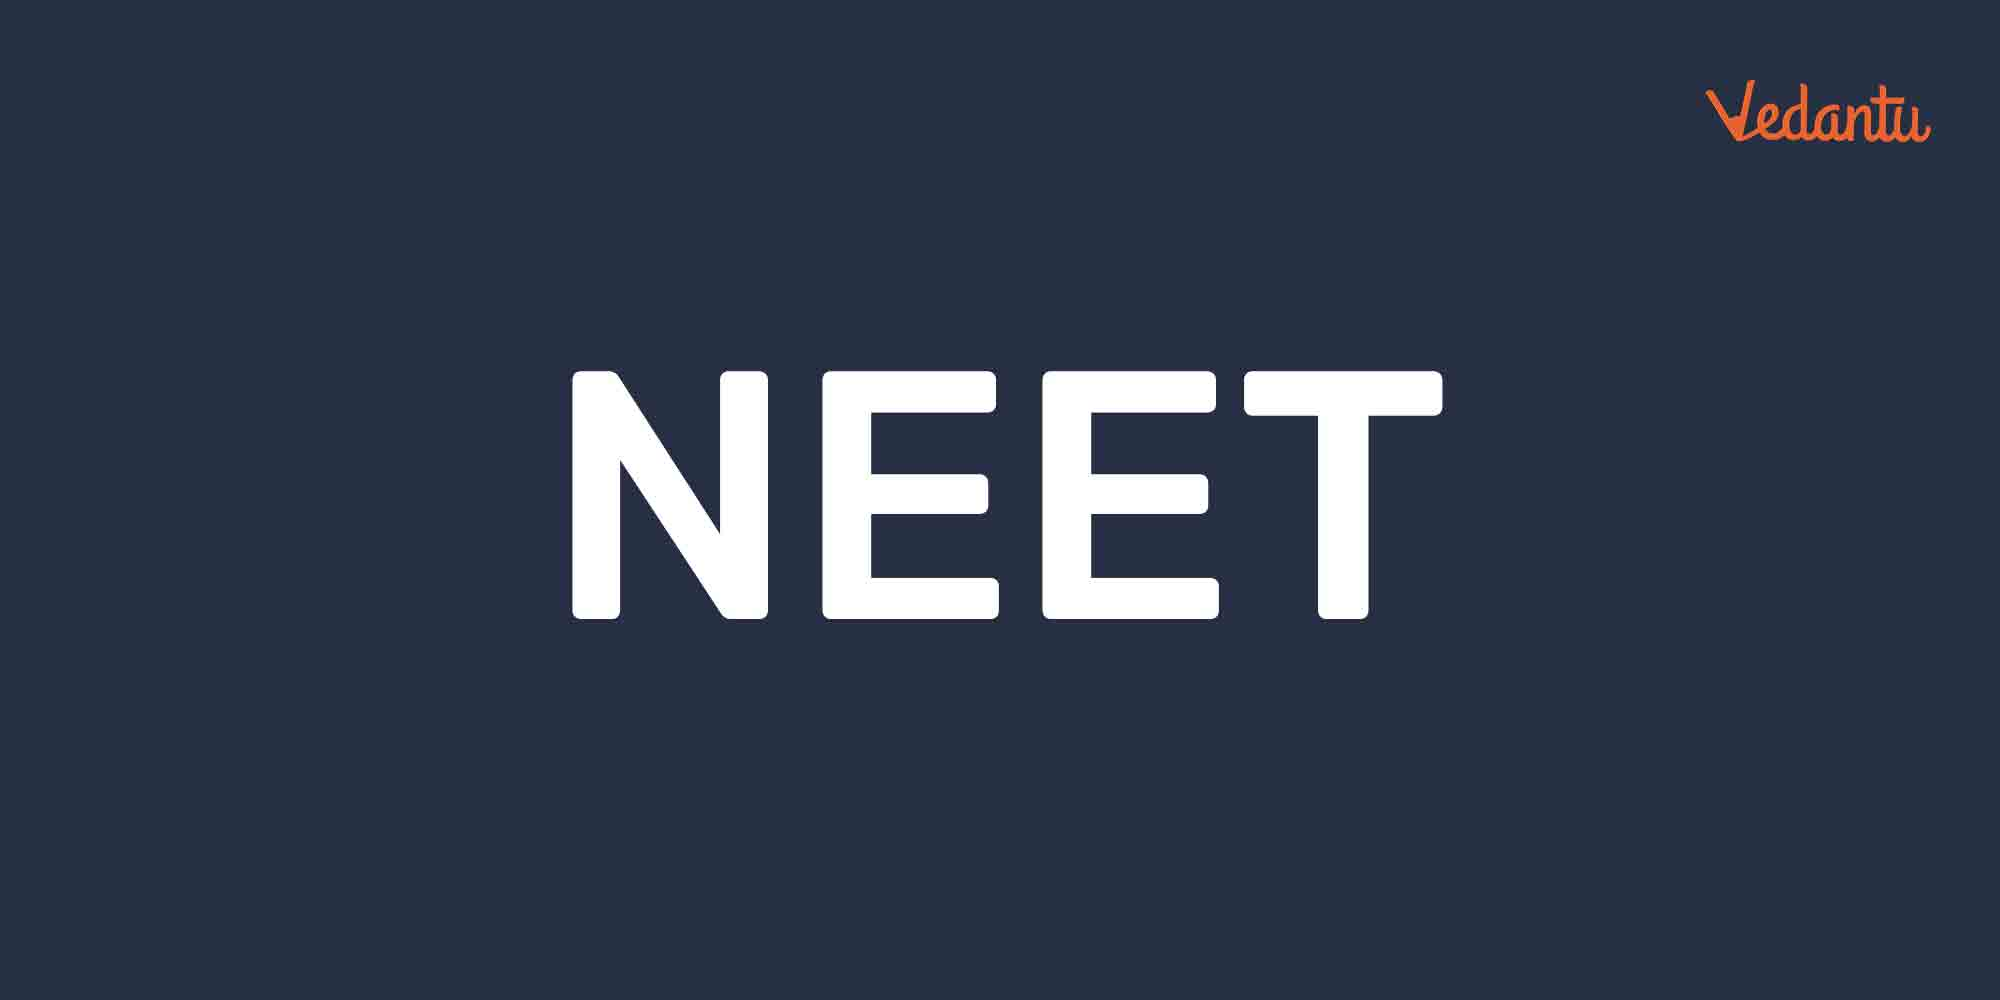 7 Ways To Deal With Stress and Anxiety During NEET Exam Preparation